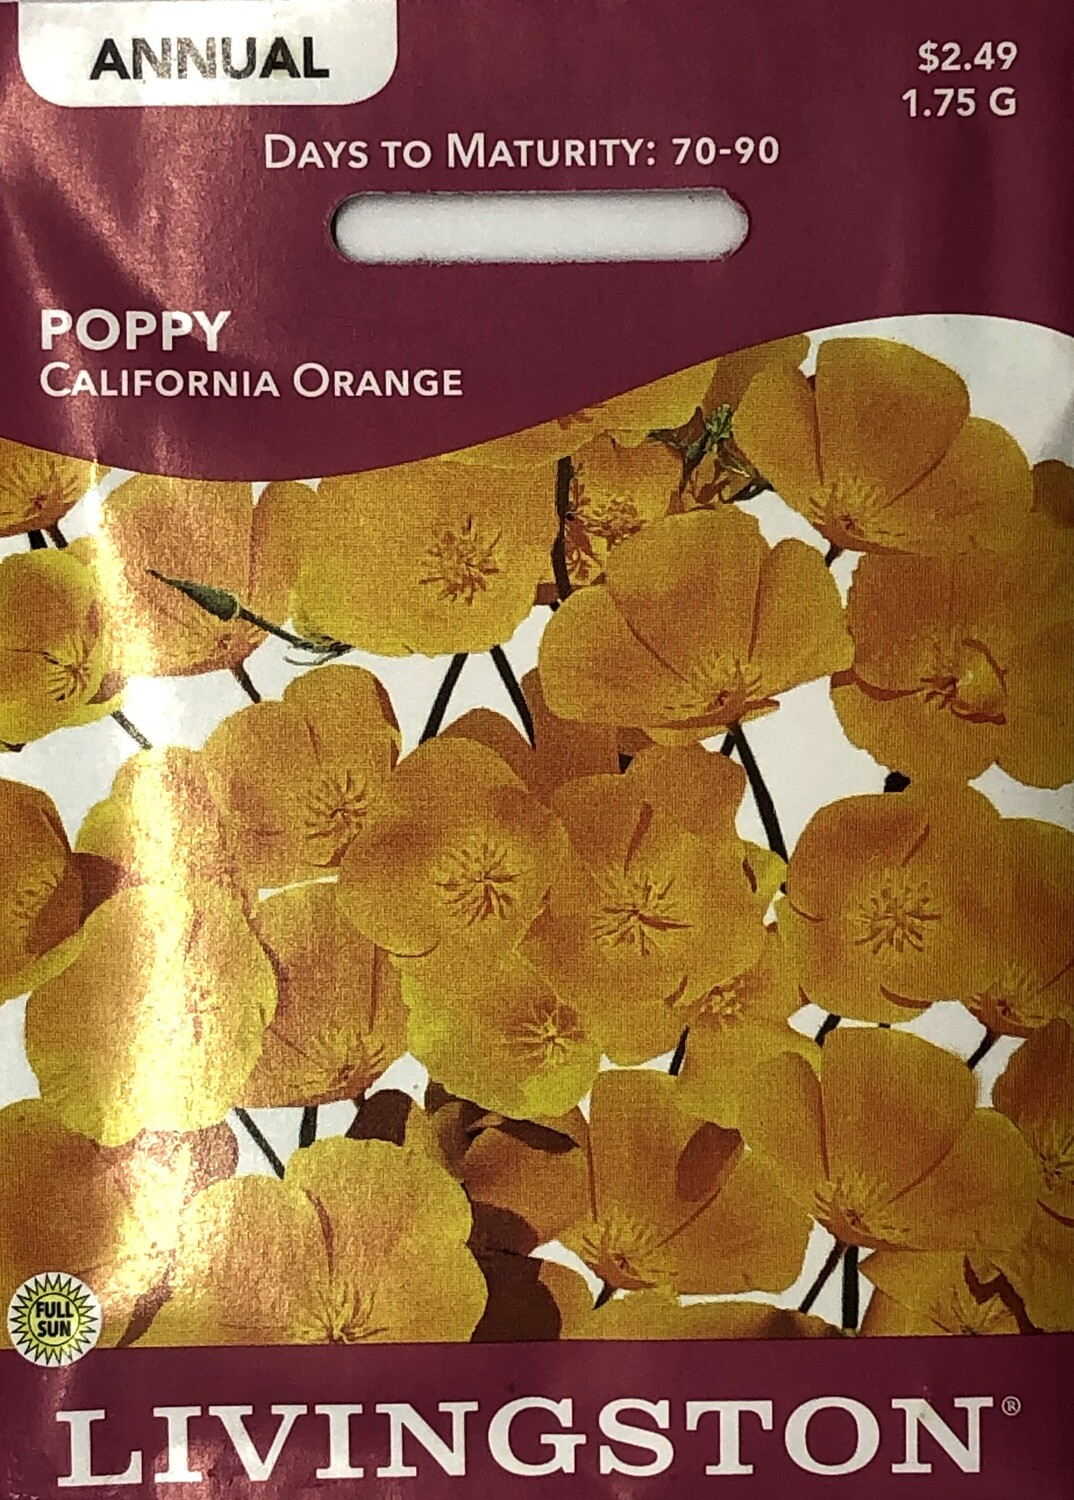 POPPY - CALIFORNIA ORANGE